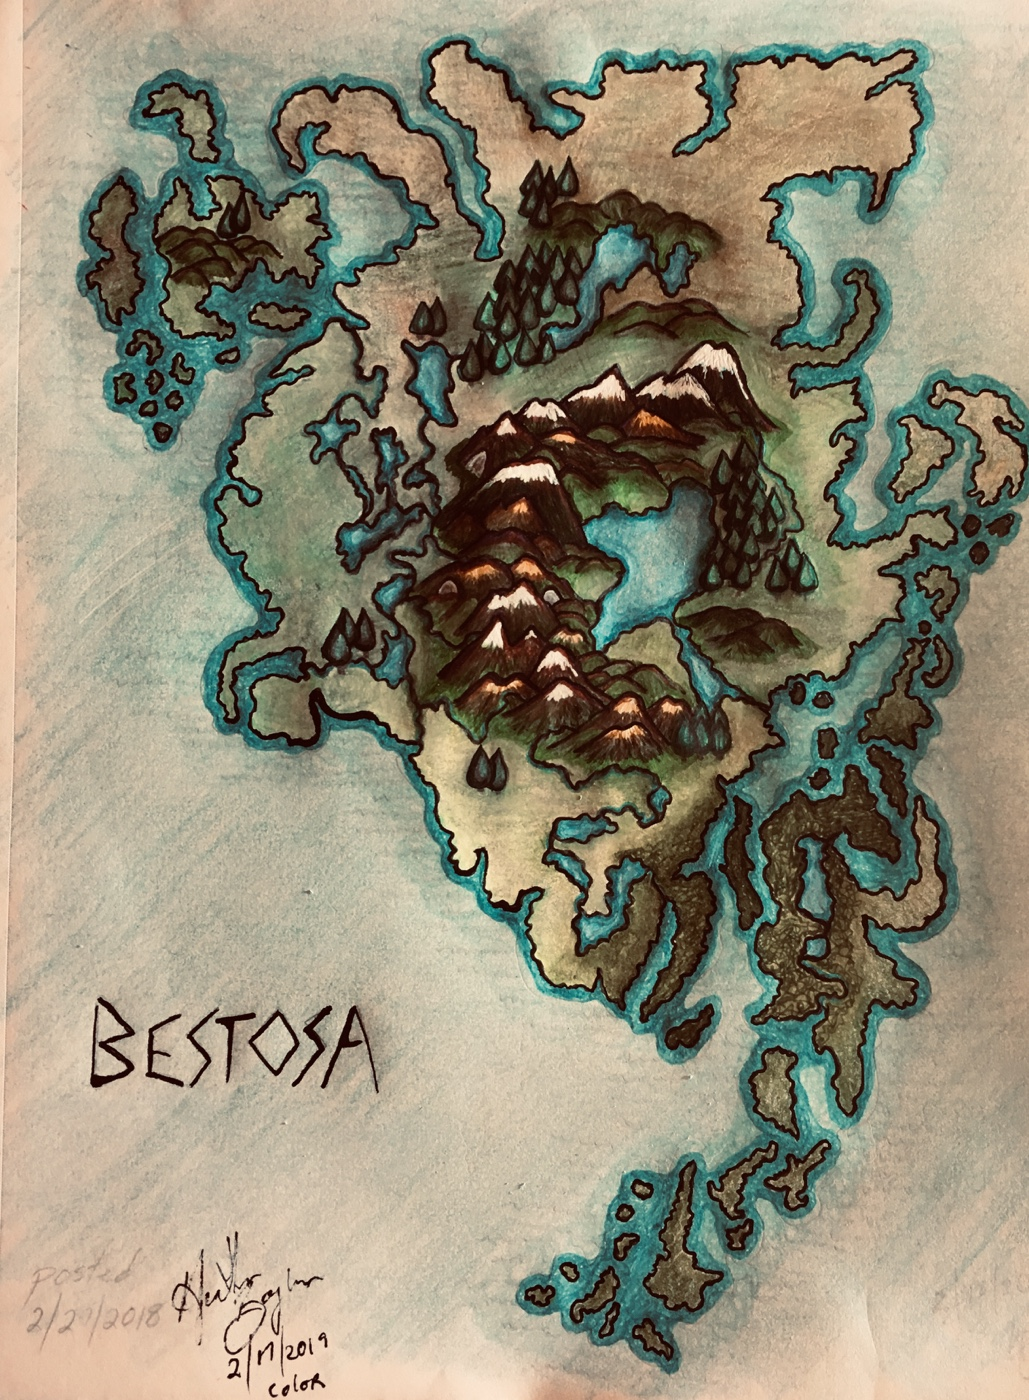 Fantasy map of Bestosa in color